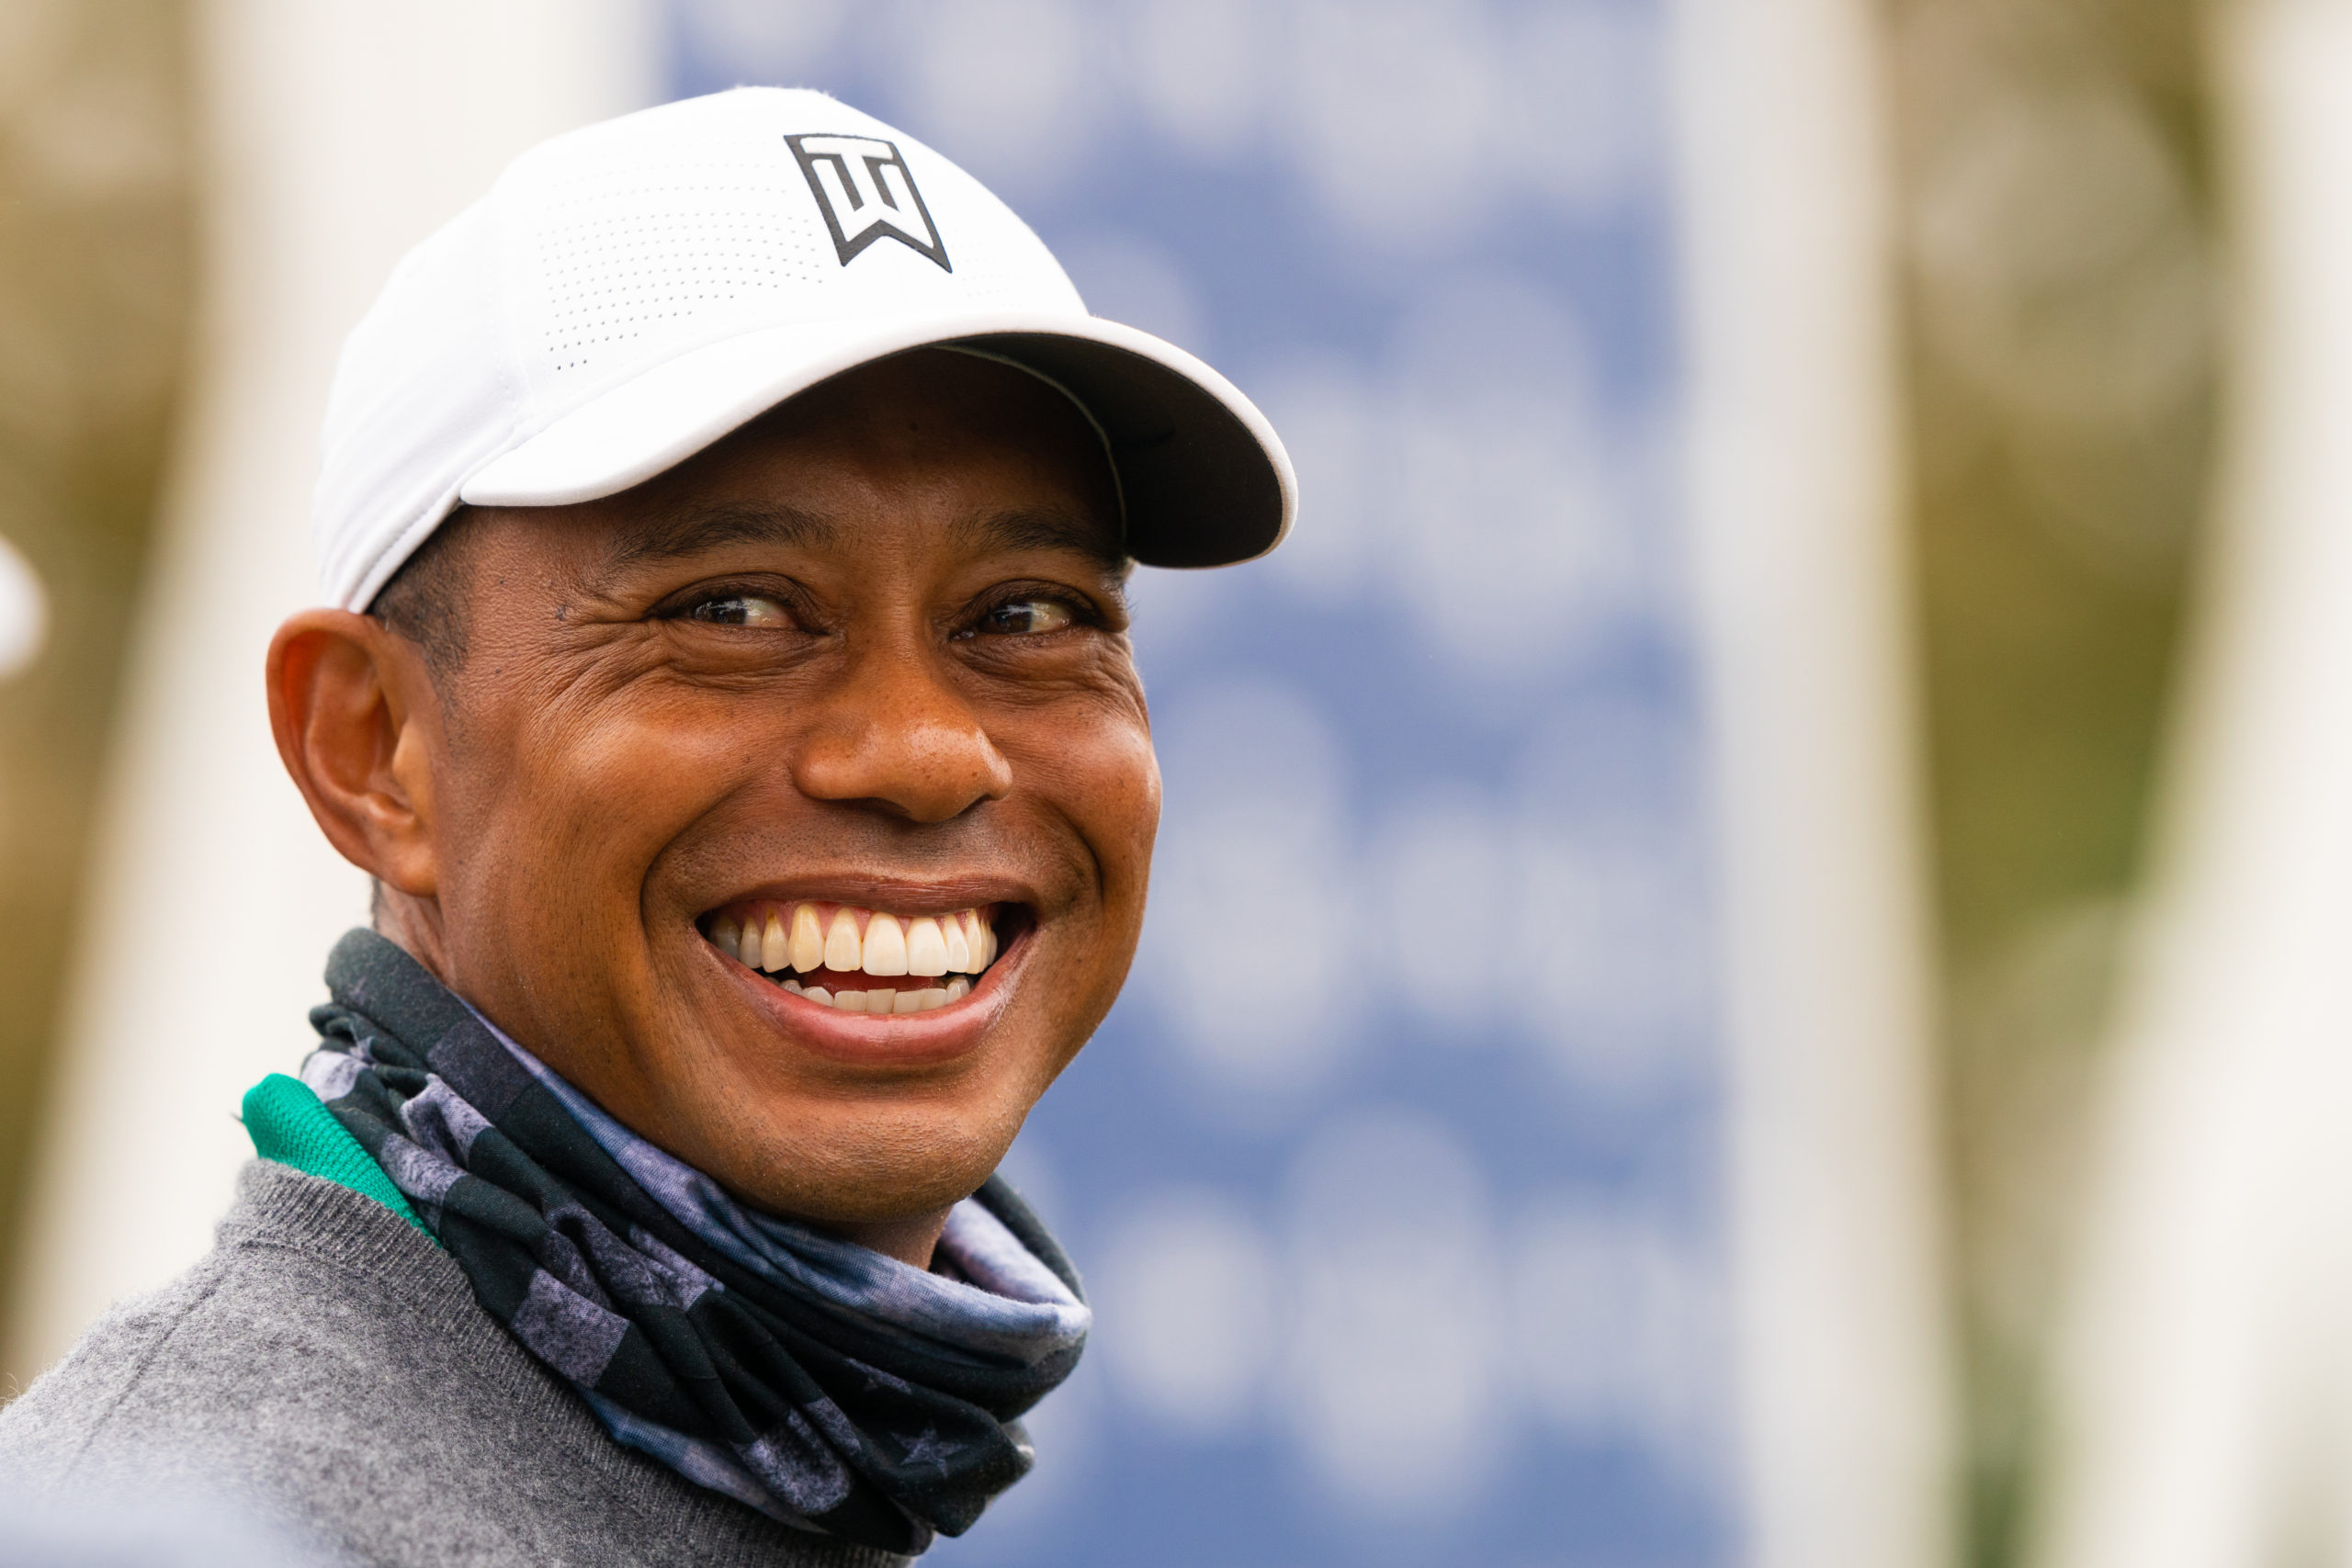 SAN FRANCISCO, CA - AUGUST 4: Tiger Woods speaks at the Quickie Quote Area during a practice round of the 102nd PGA Championship at TPC Harding Park on August 4, 2020 in San Francisco, California. (Photo by Darren Carroll/PGA of America)